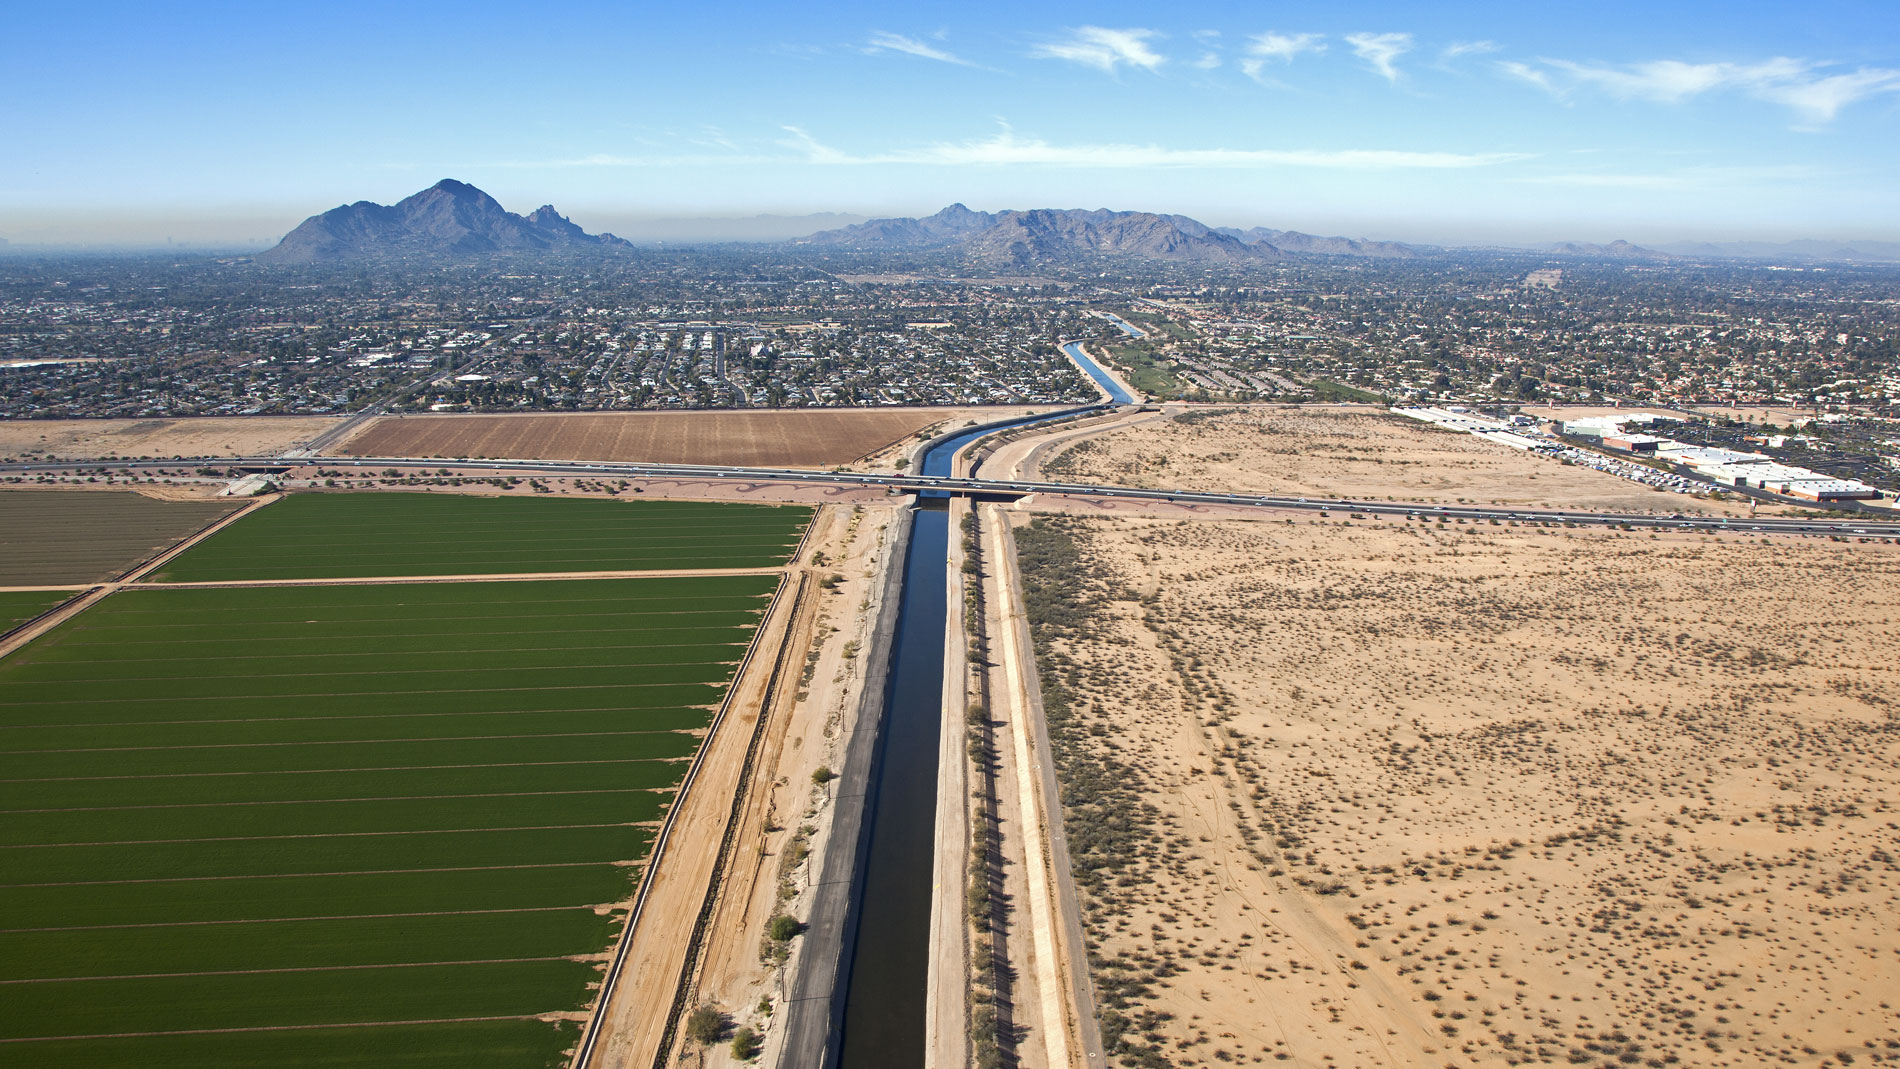 An irrigation canal running near agricultural fields in the Phoenix metropolitan area.